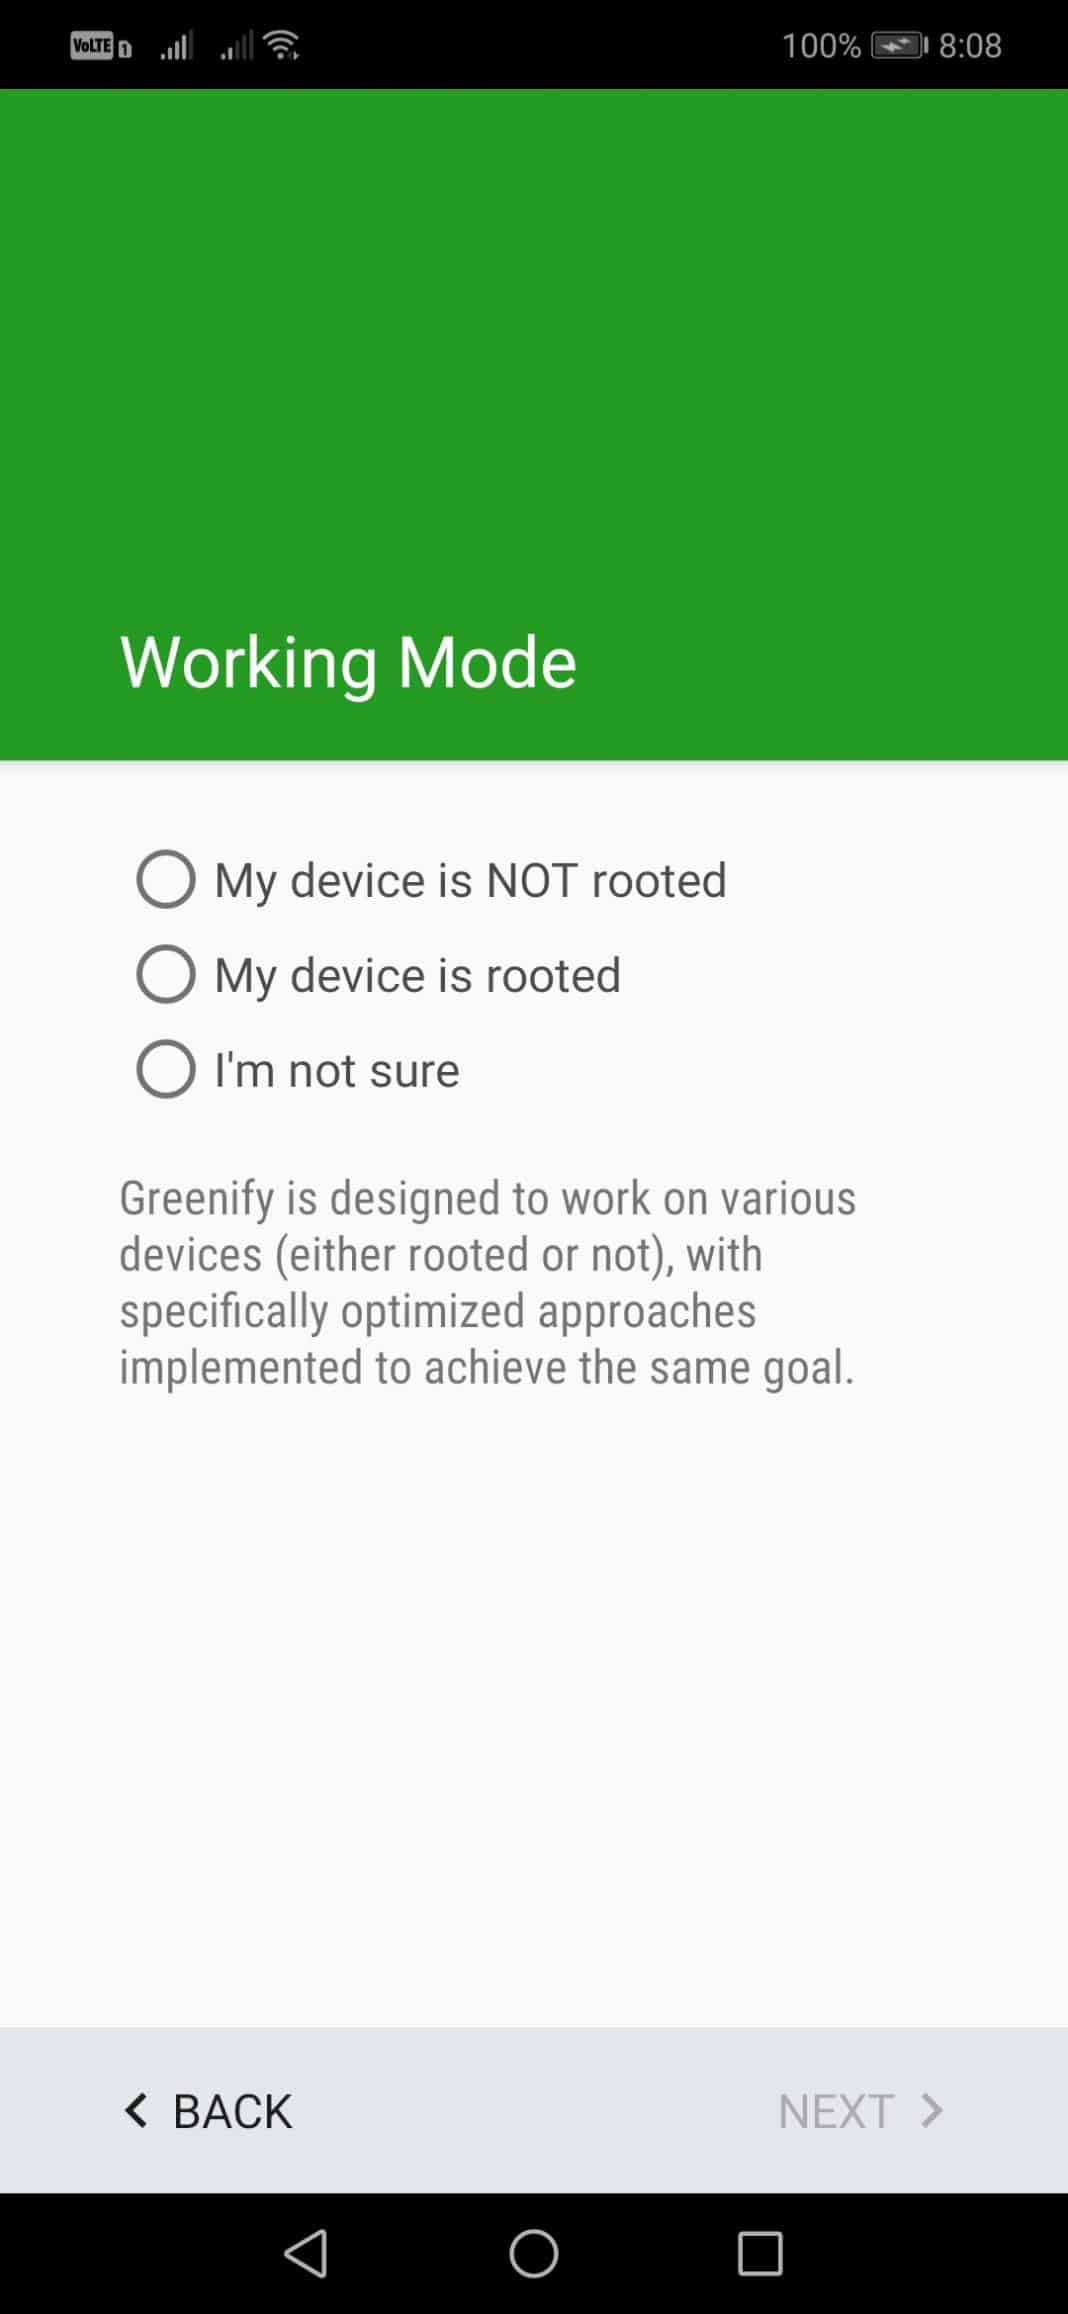 Select 'My device is NOT rooted'